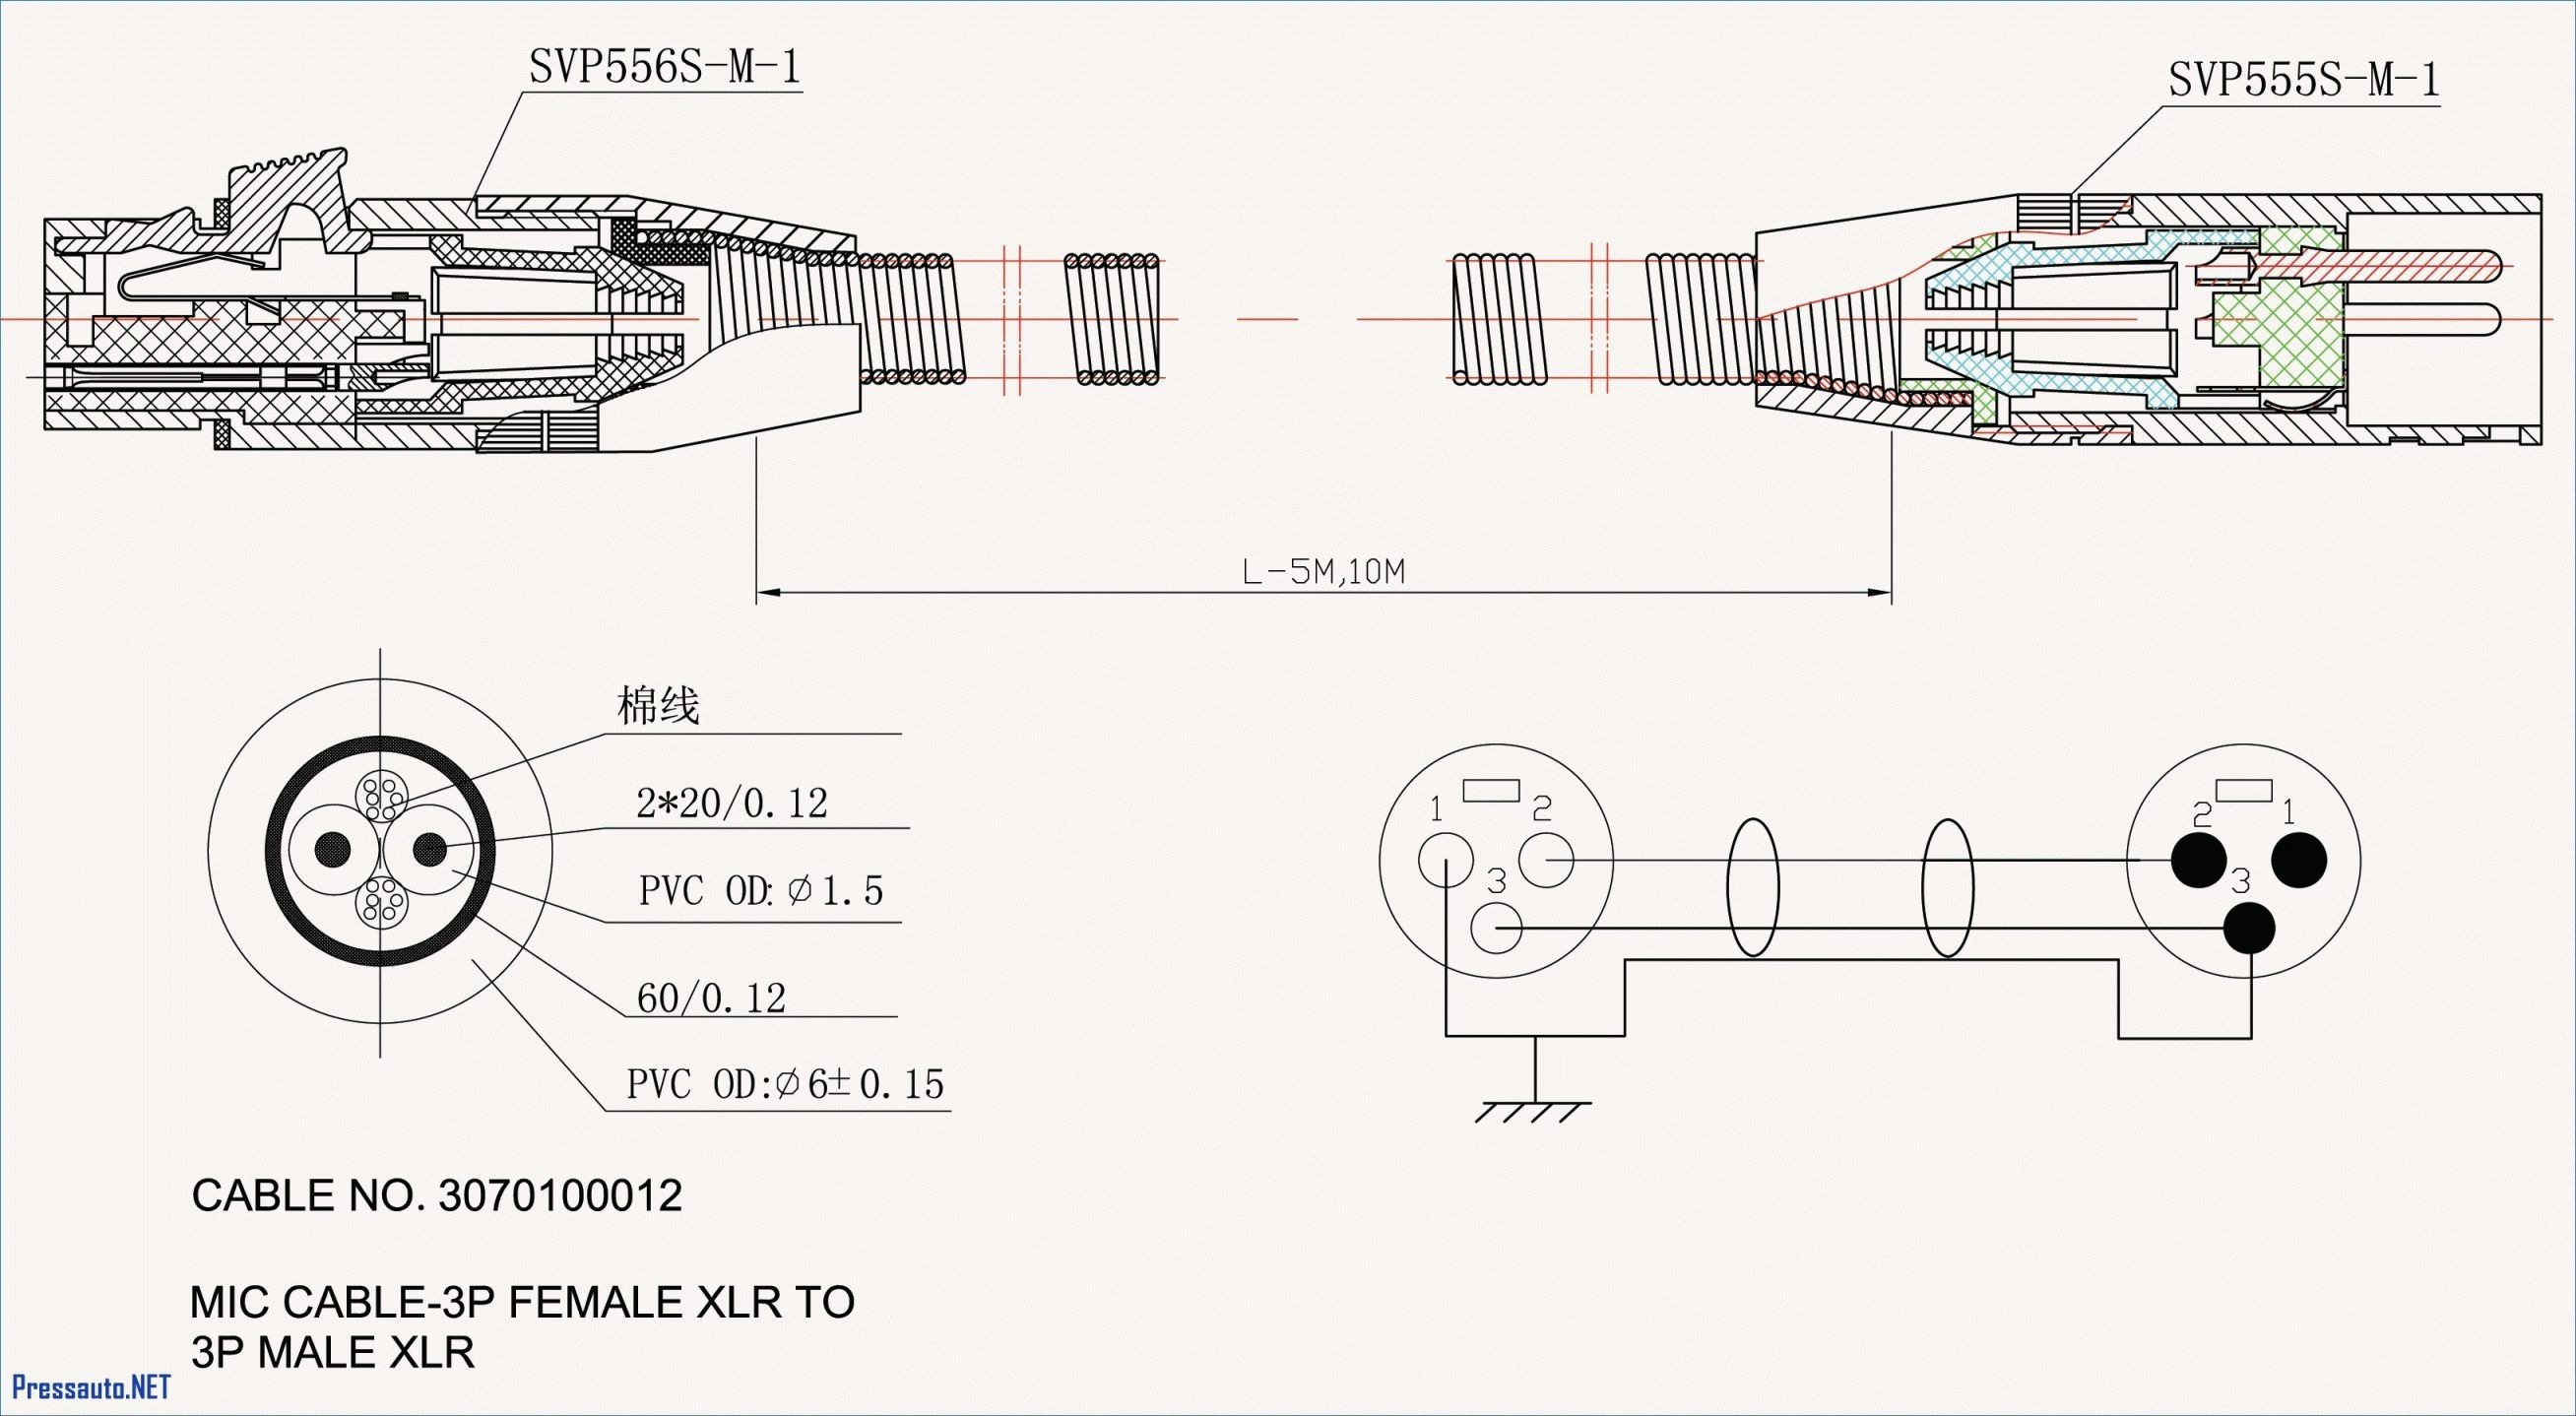 single wire alternator wiring diagram fresh gm 2 wire alternator wiring diagram wiring diagram of single wire alternator wiring diagram